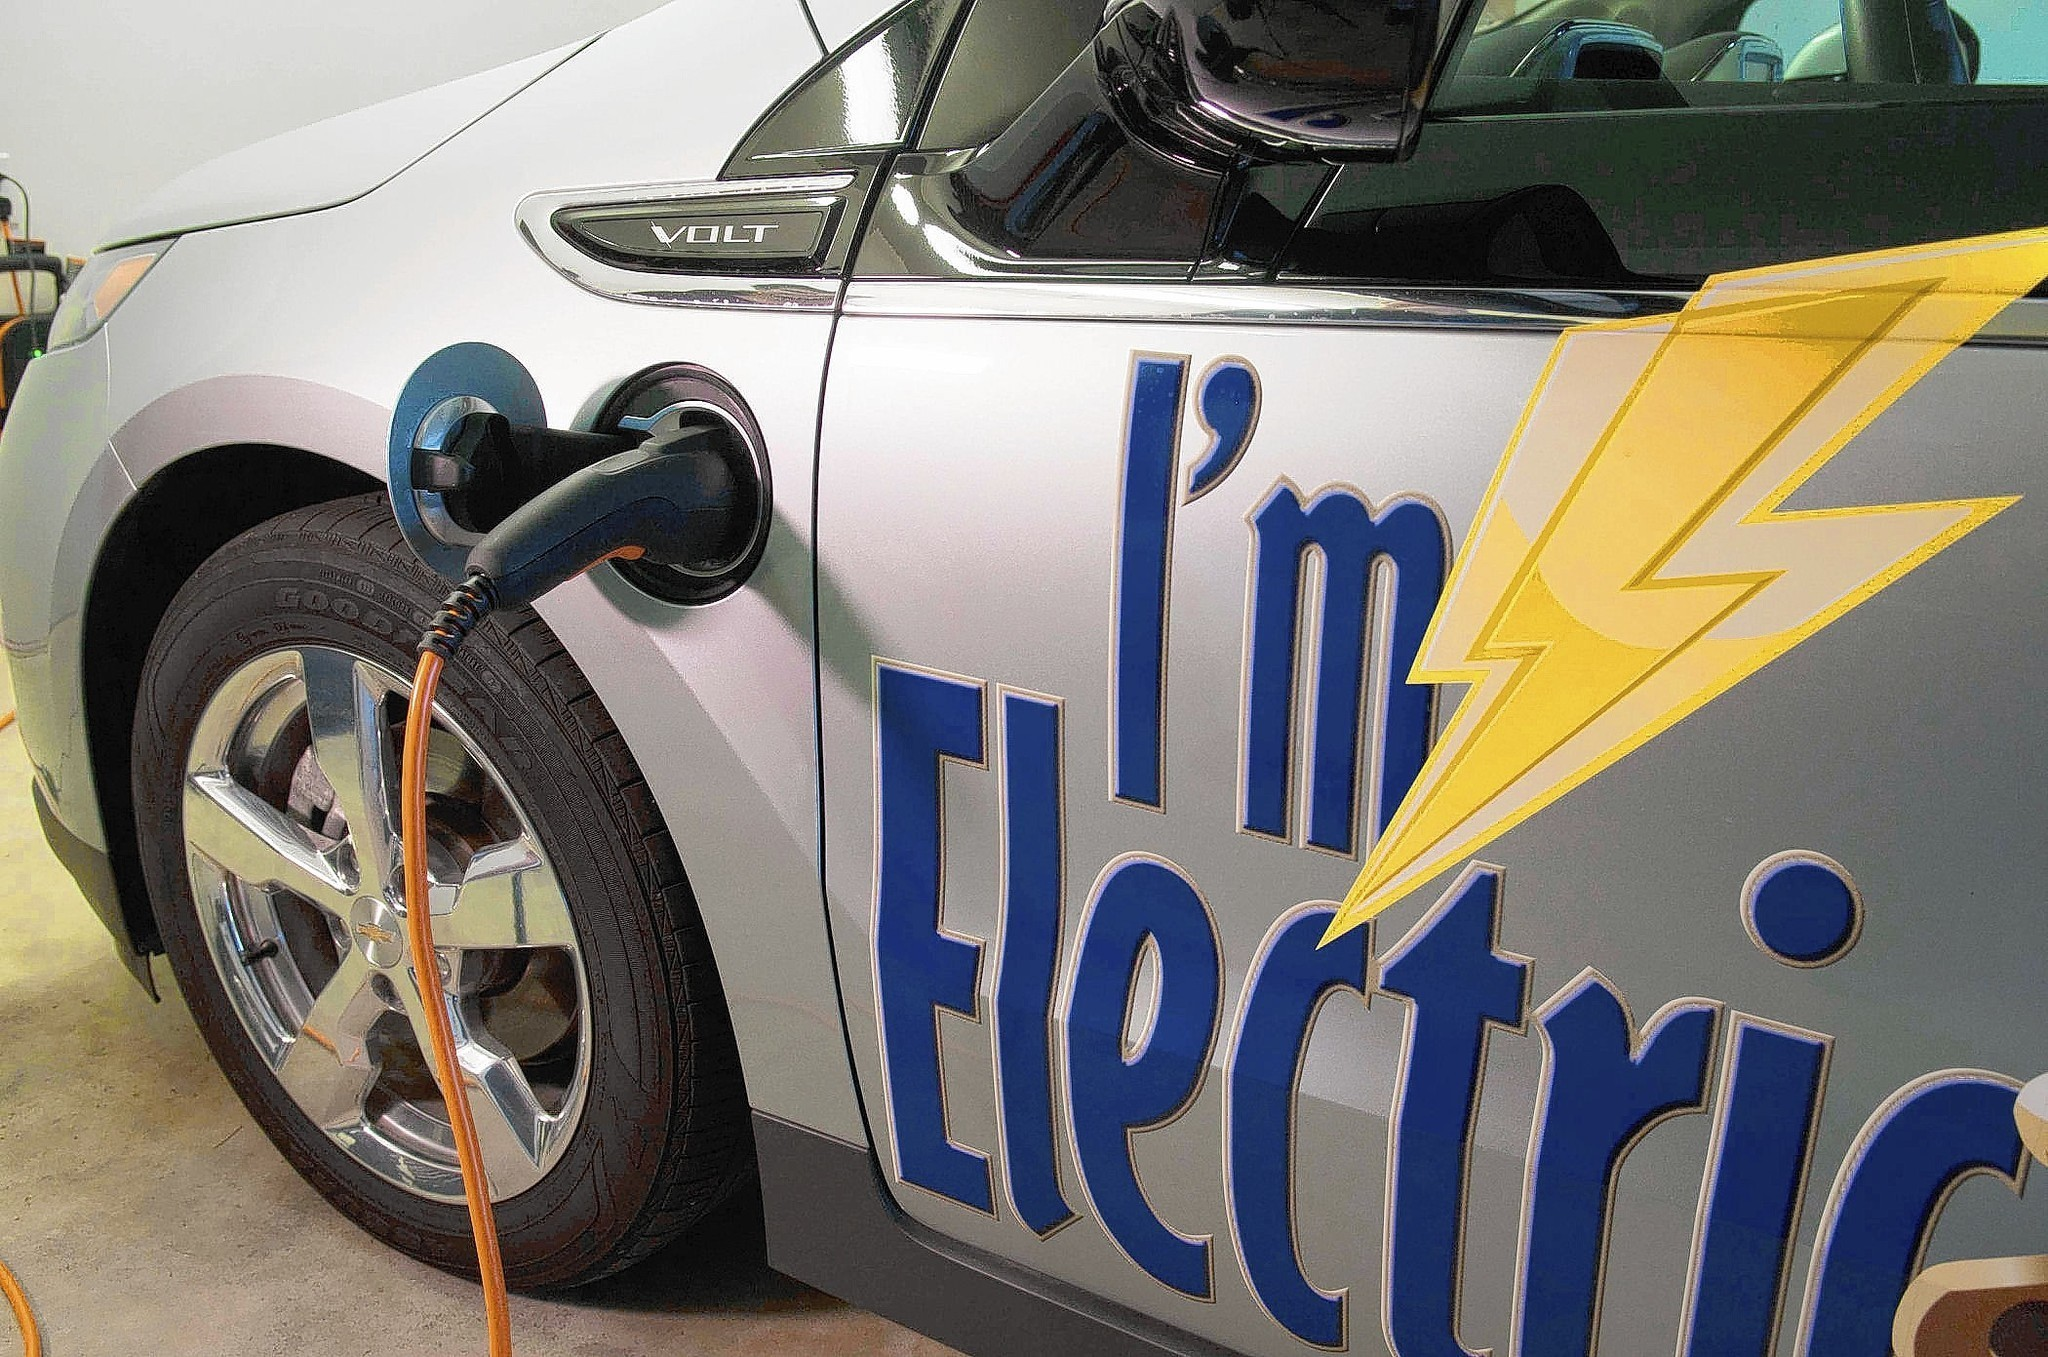 Plug In Hybrid Cars >> PA companies get state money for cleaner cars - Lehigh Valley Business Cycle